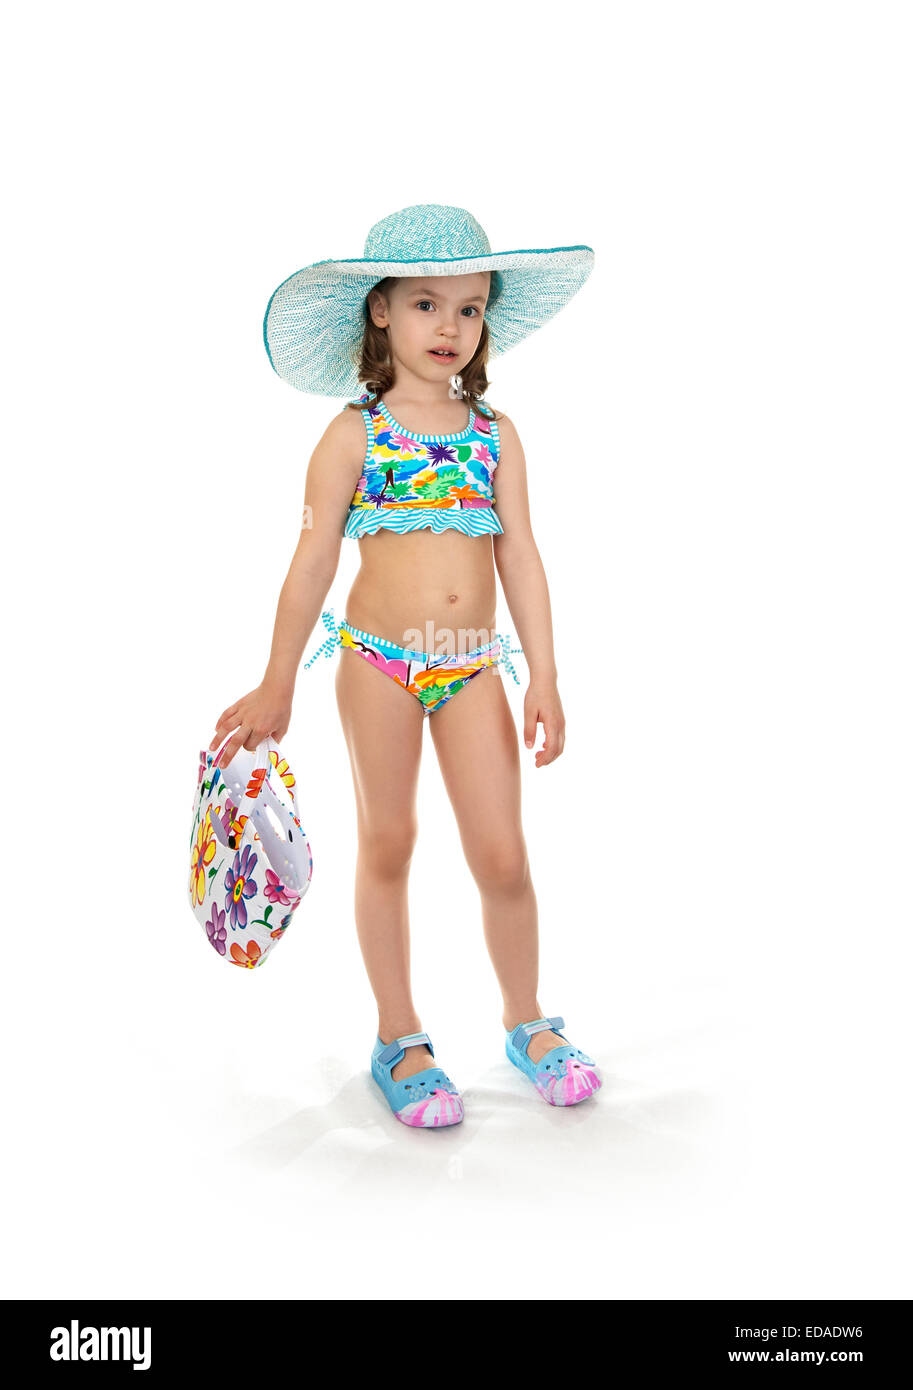 3e5453065 little girl in a beach dress Stock Photo  77062418 - Alamy